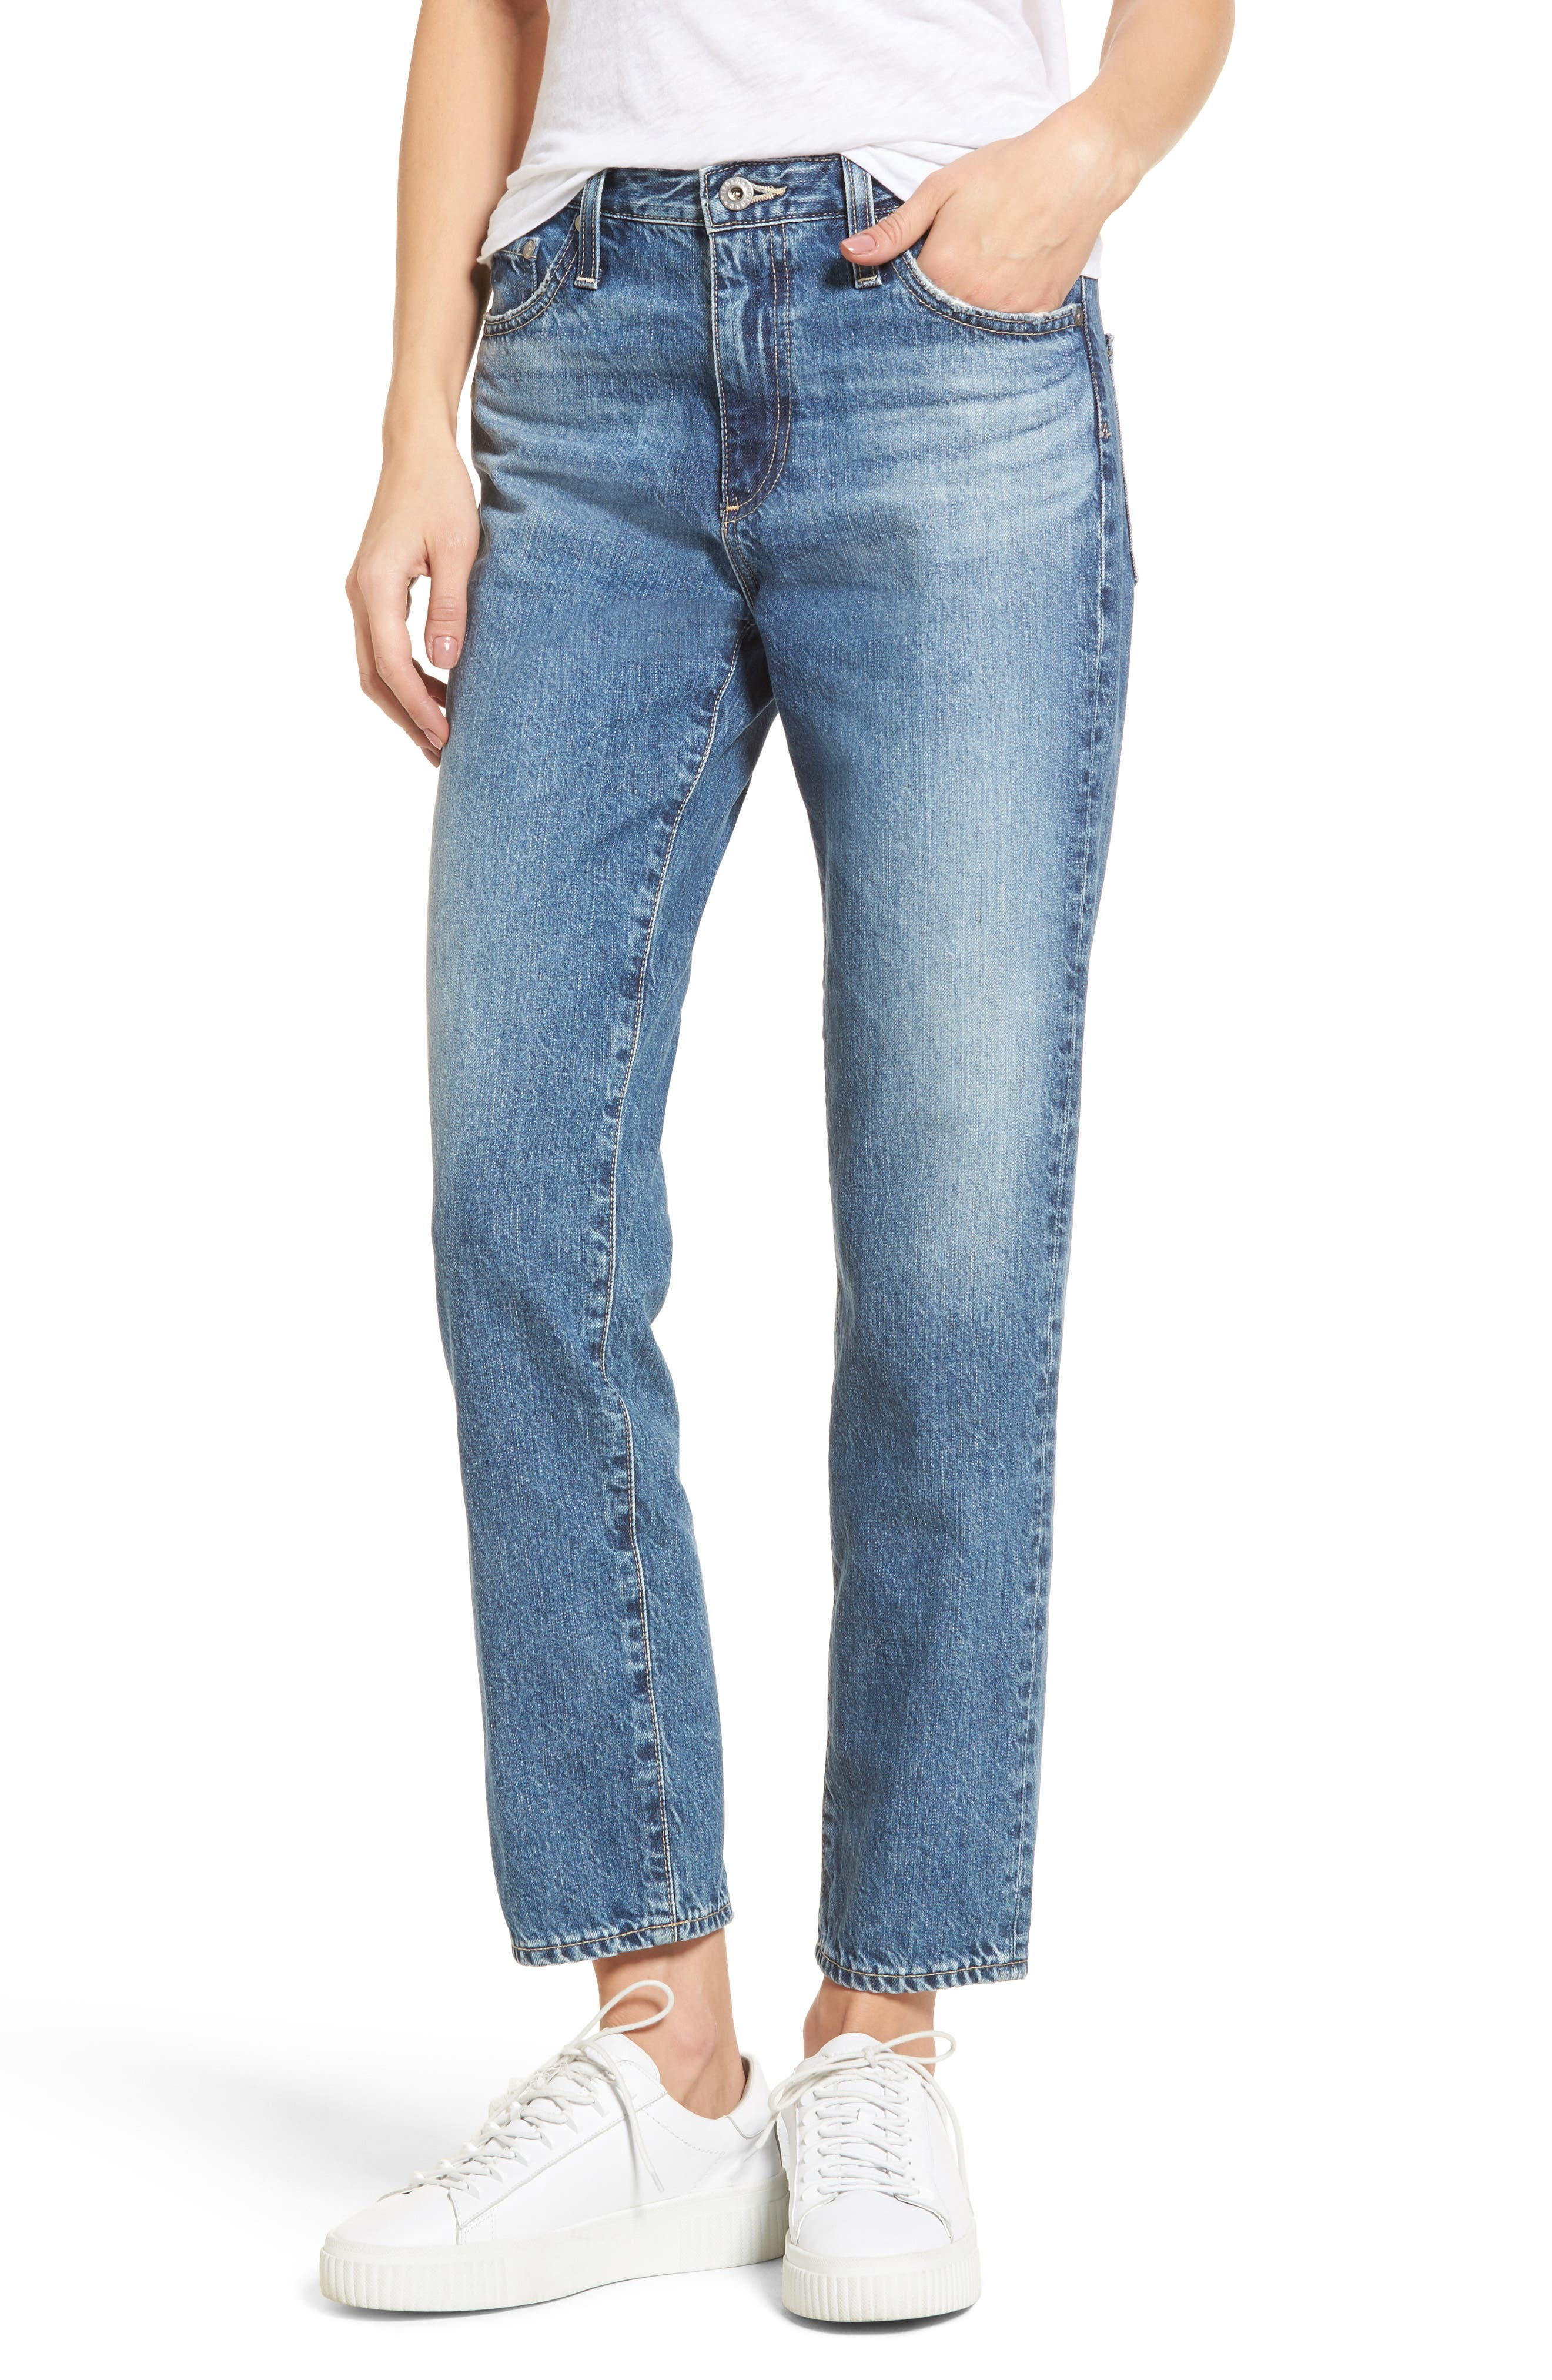 Isabelle High Waist Straight Leg Crop Jeans,                             Main thumbnail 1, color,                             436